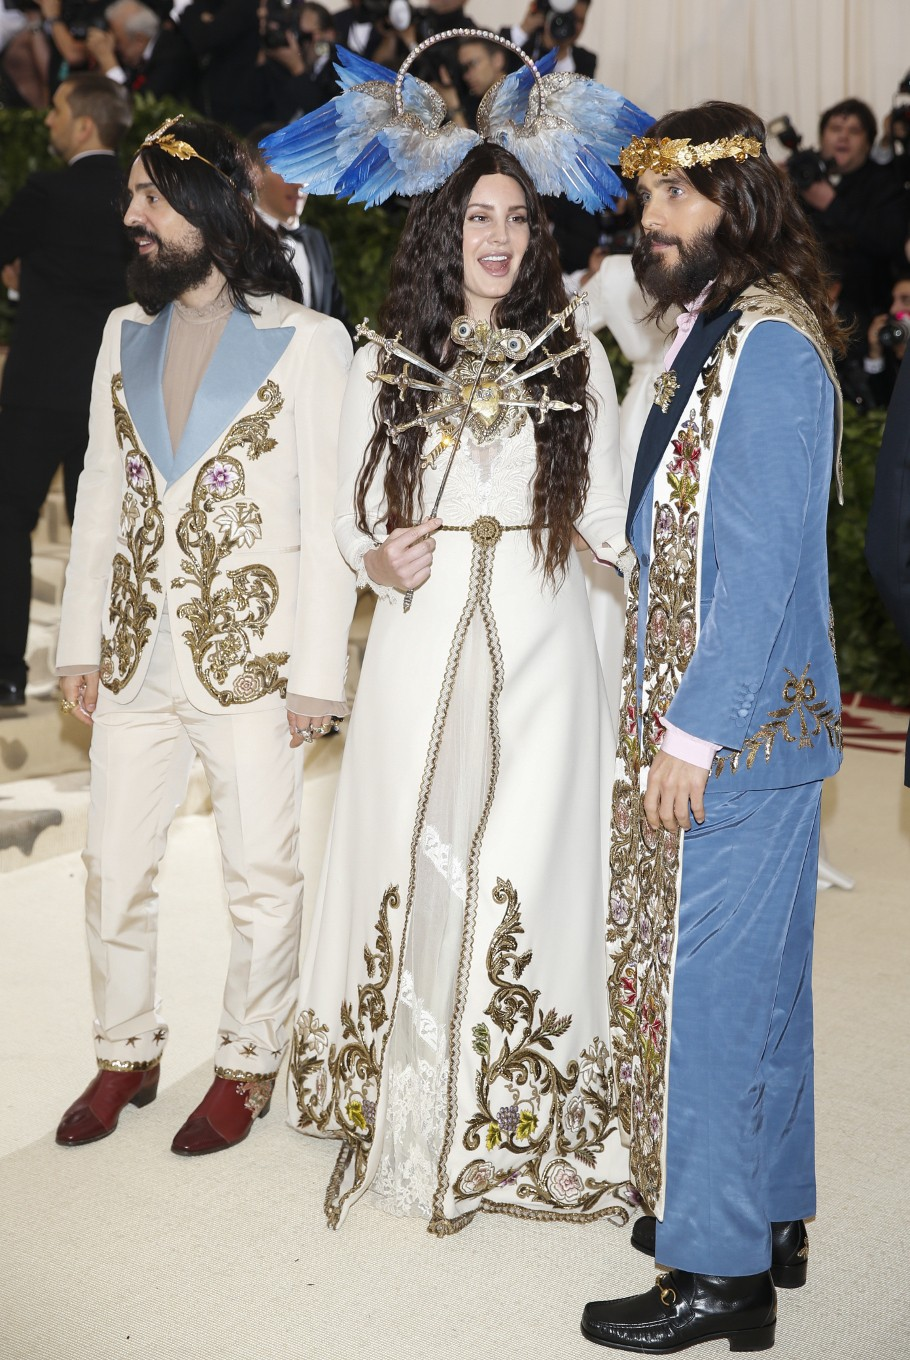 Alessandro Michele, Lana Del Rey and Jared Leto arrive at the Metropolitan Museum of Art Costume Institute Gala (Met Gala) to celebrate the opening of 'Heavenly Bodies: Fashion and the Catholic Imagination' in the Manhattan borough of New York, U.S., May 7, 2018.